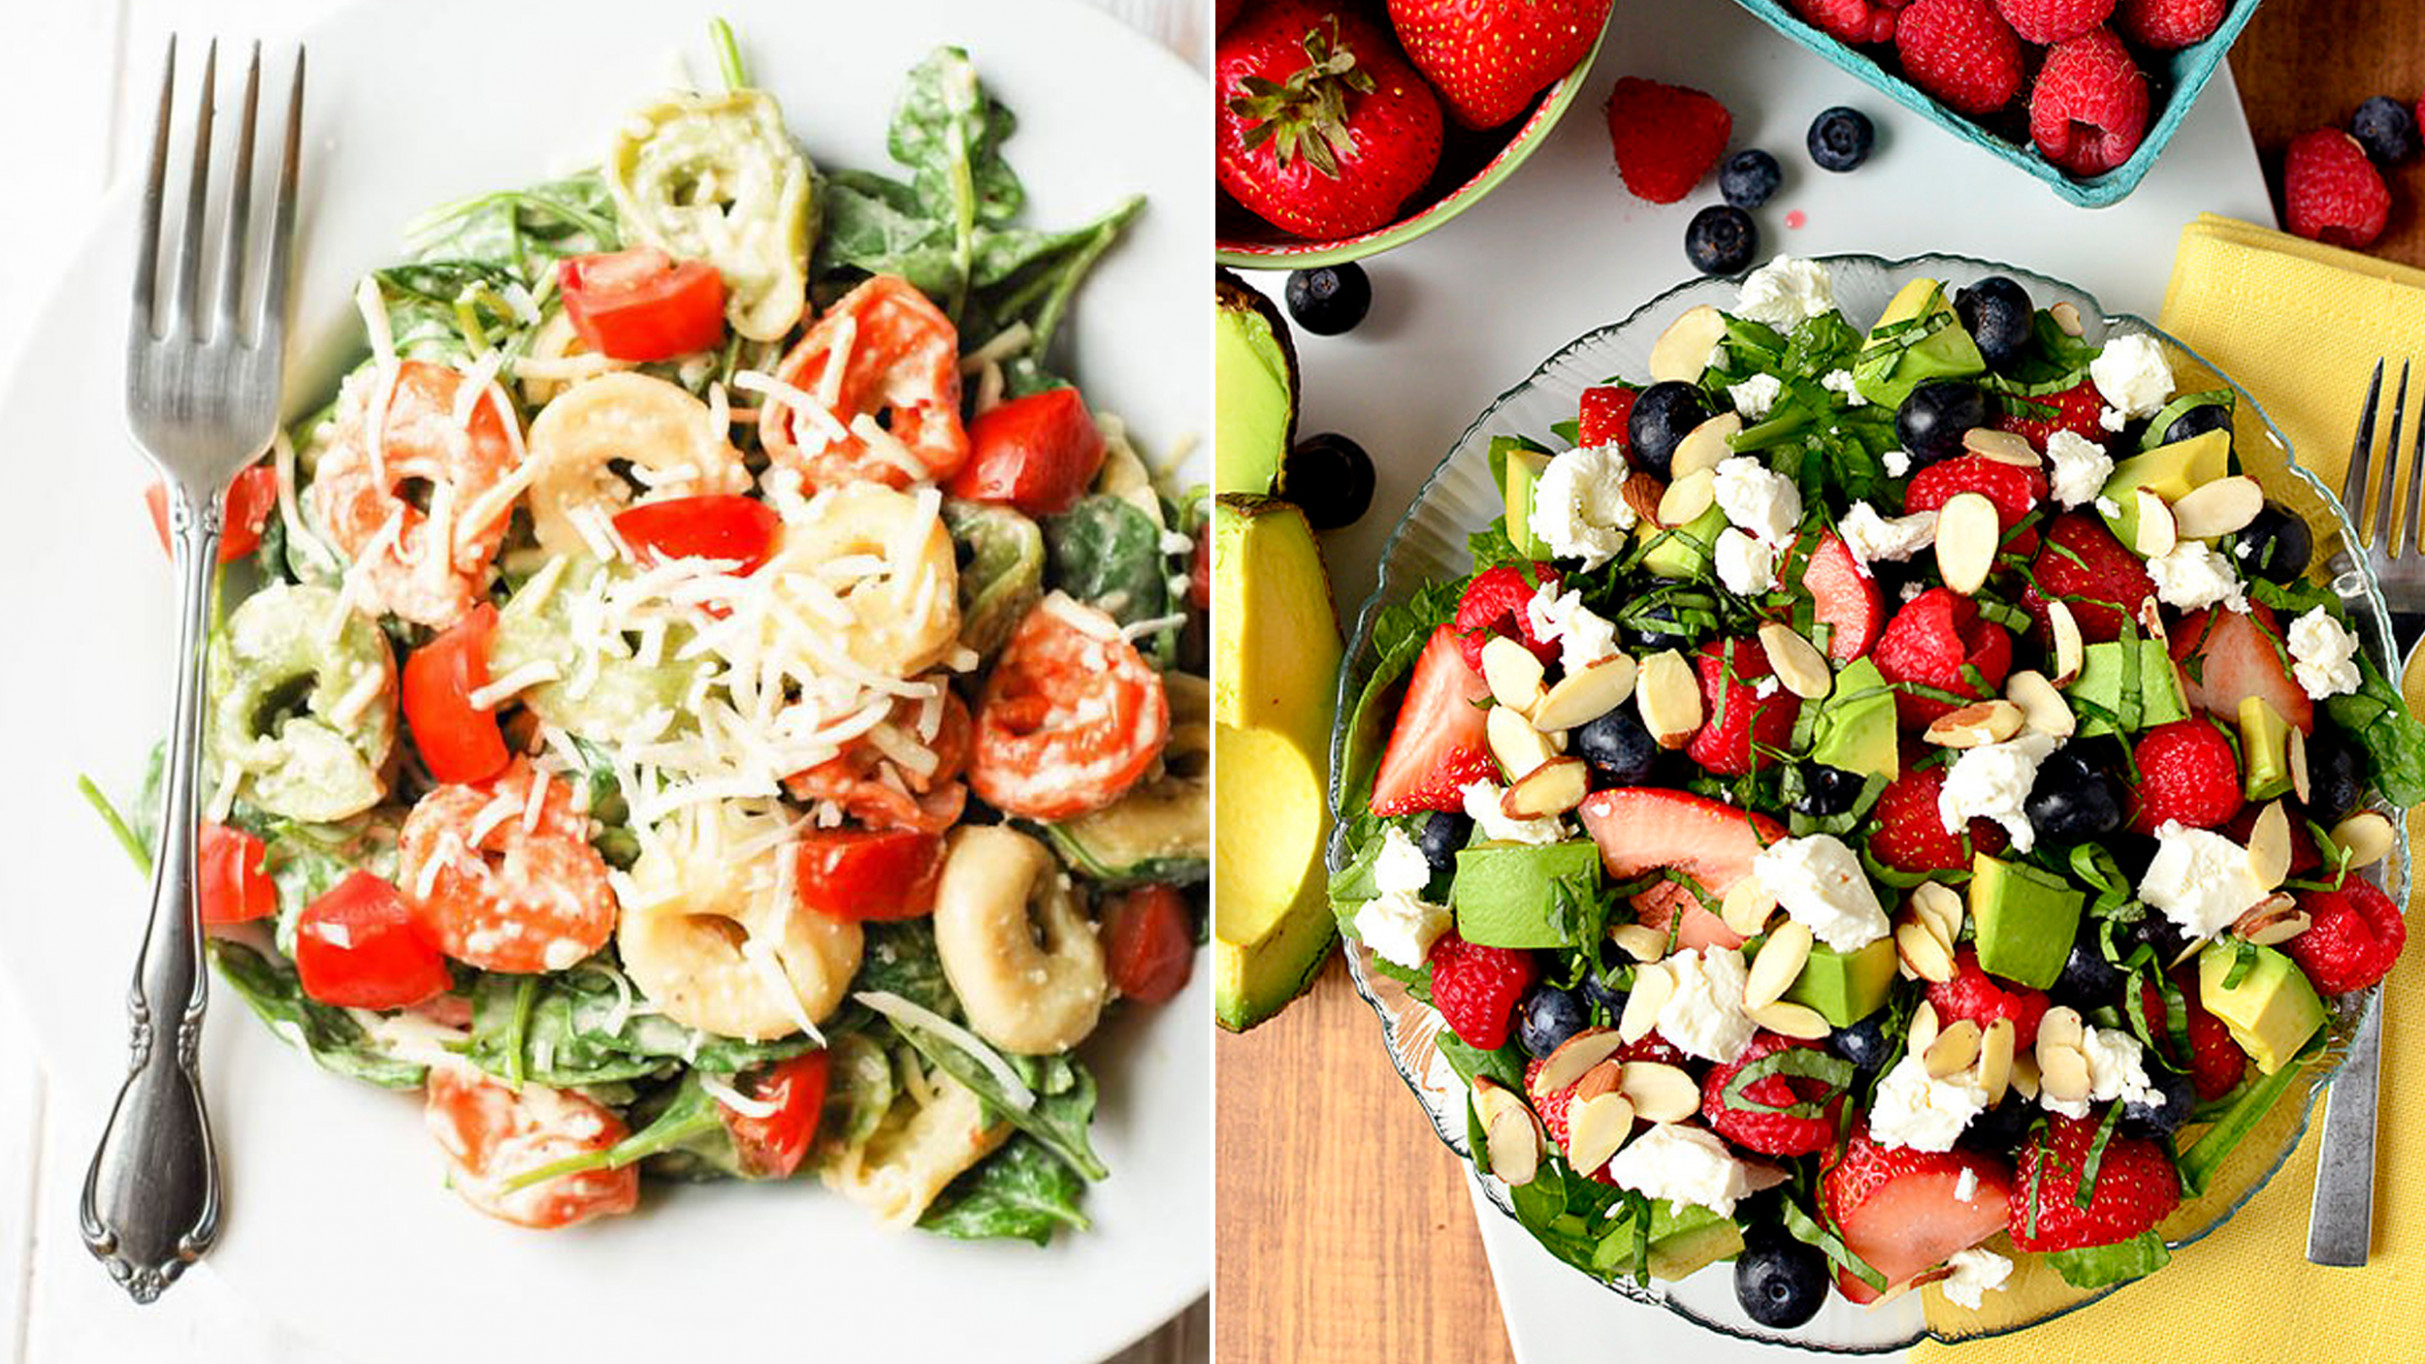 7 Pinterest Approved Healthy Summer Salad Recipes - TODAY